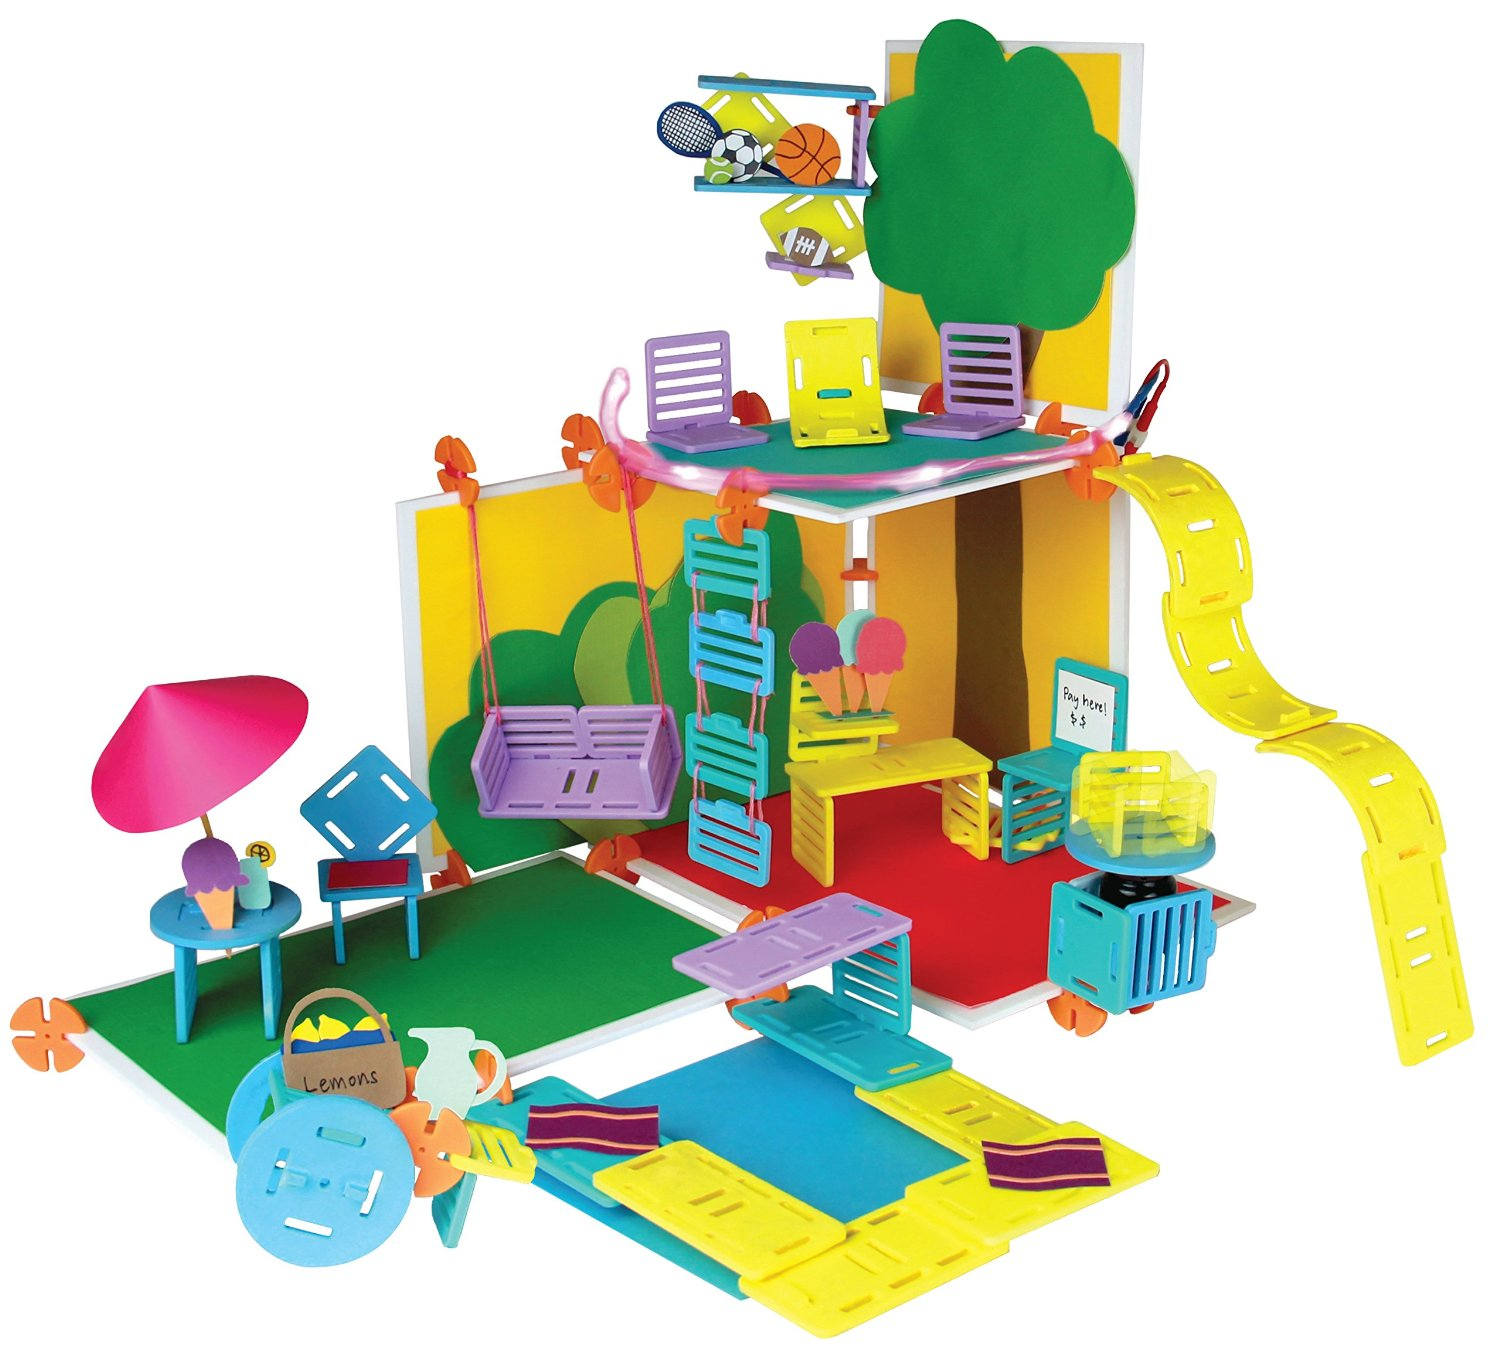 The Top 5 STEM BUILDING Toys for Girls!